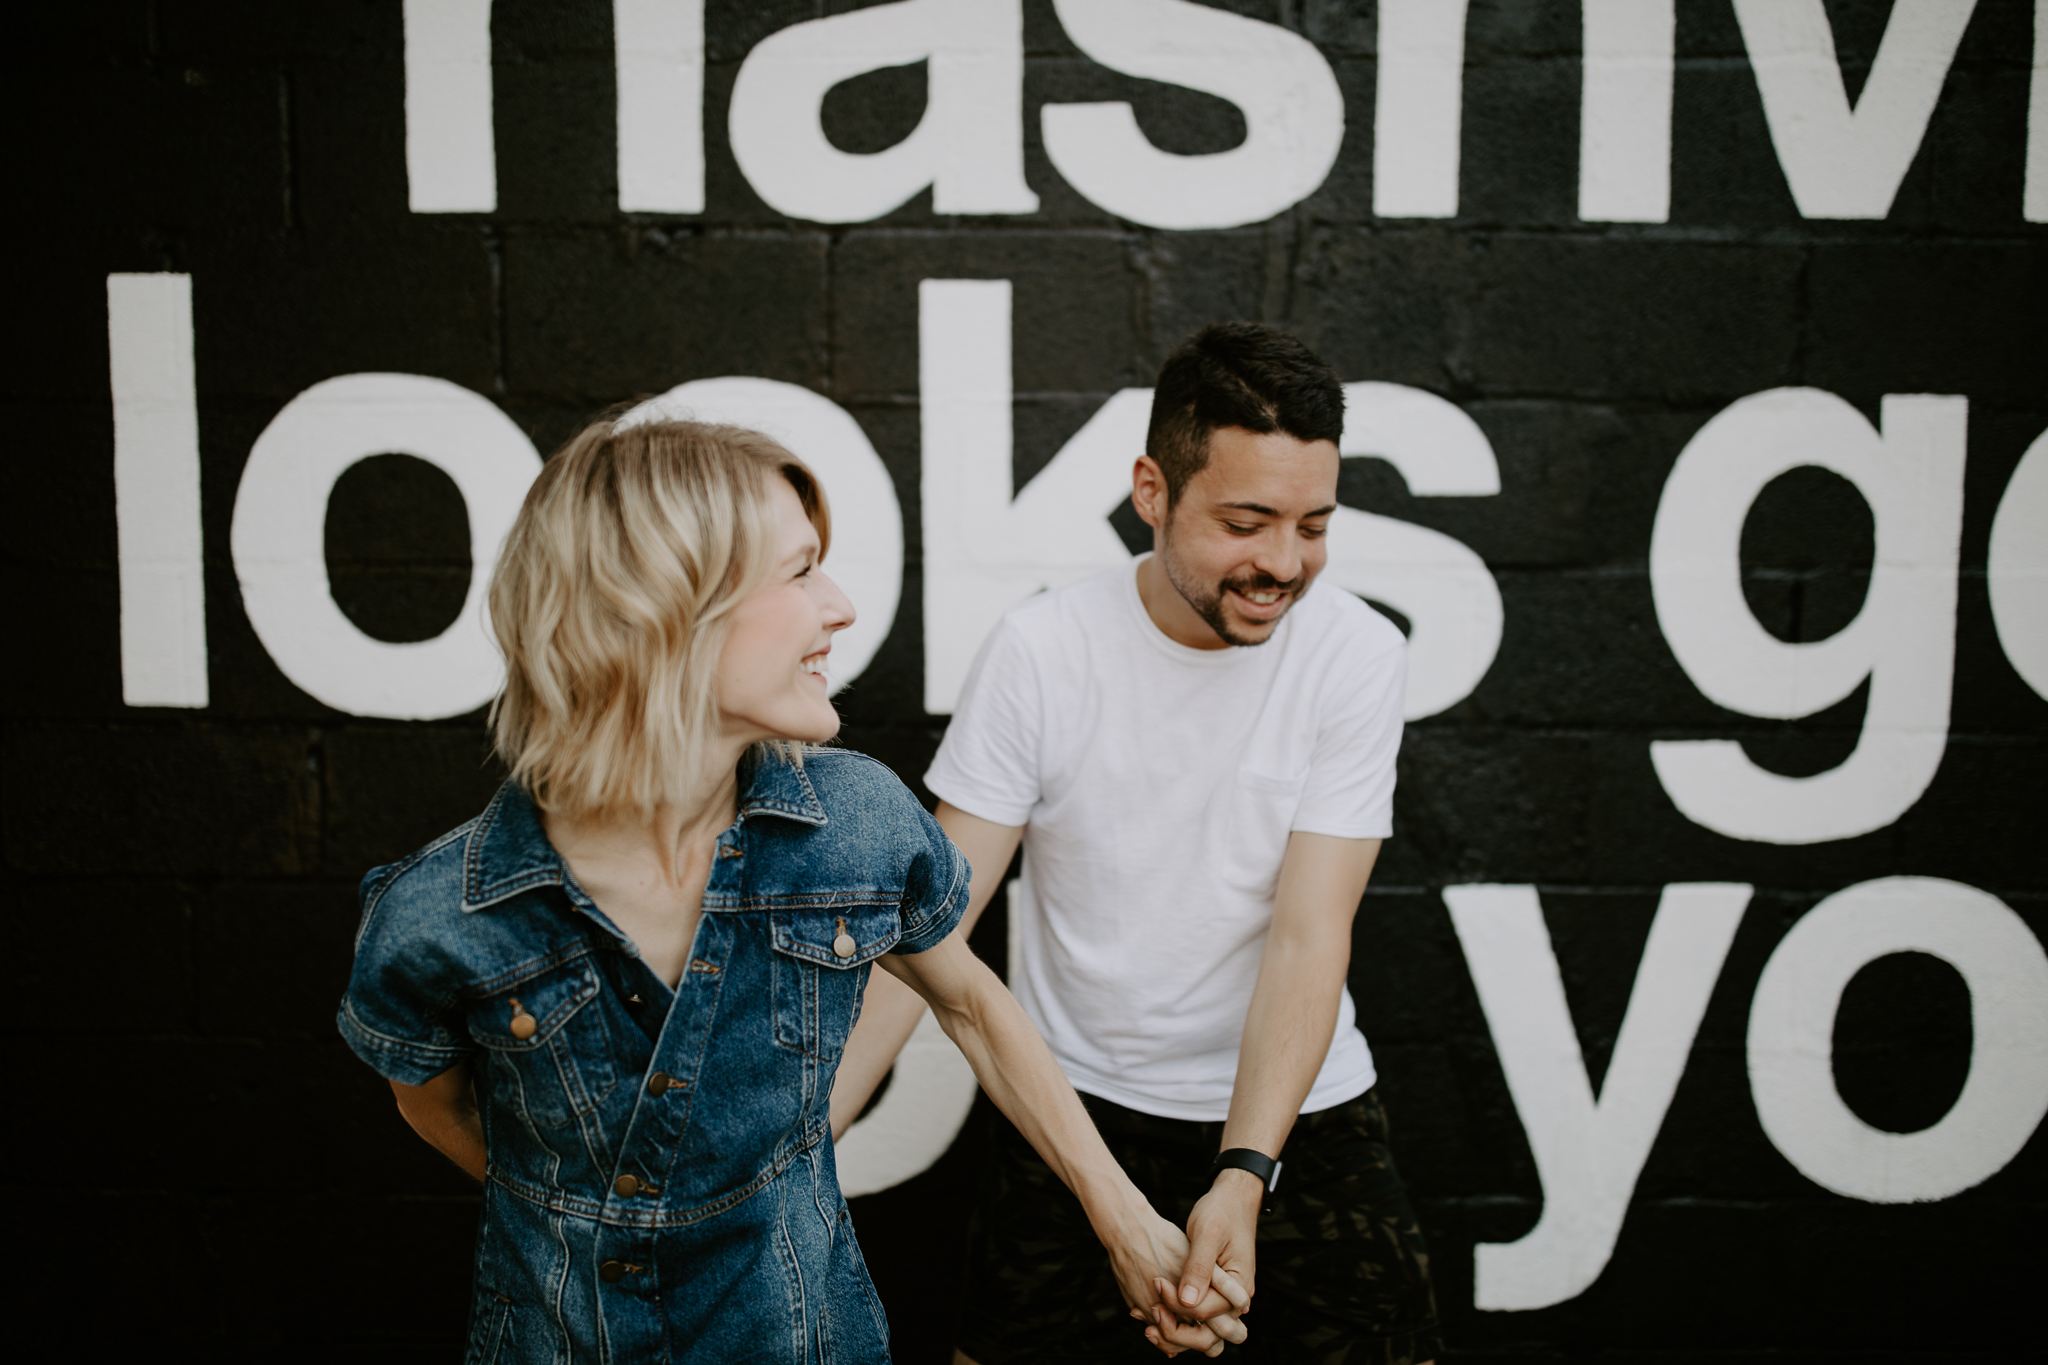 Fun and energetic mural couples session in Nashville, Tennessee